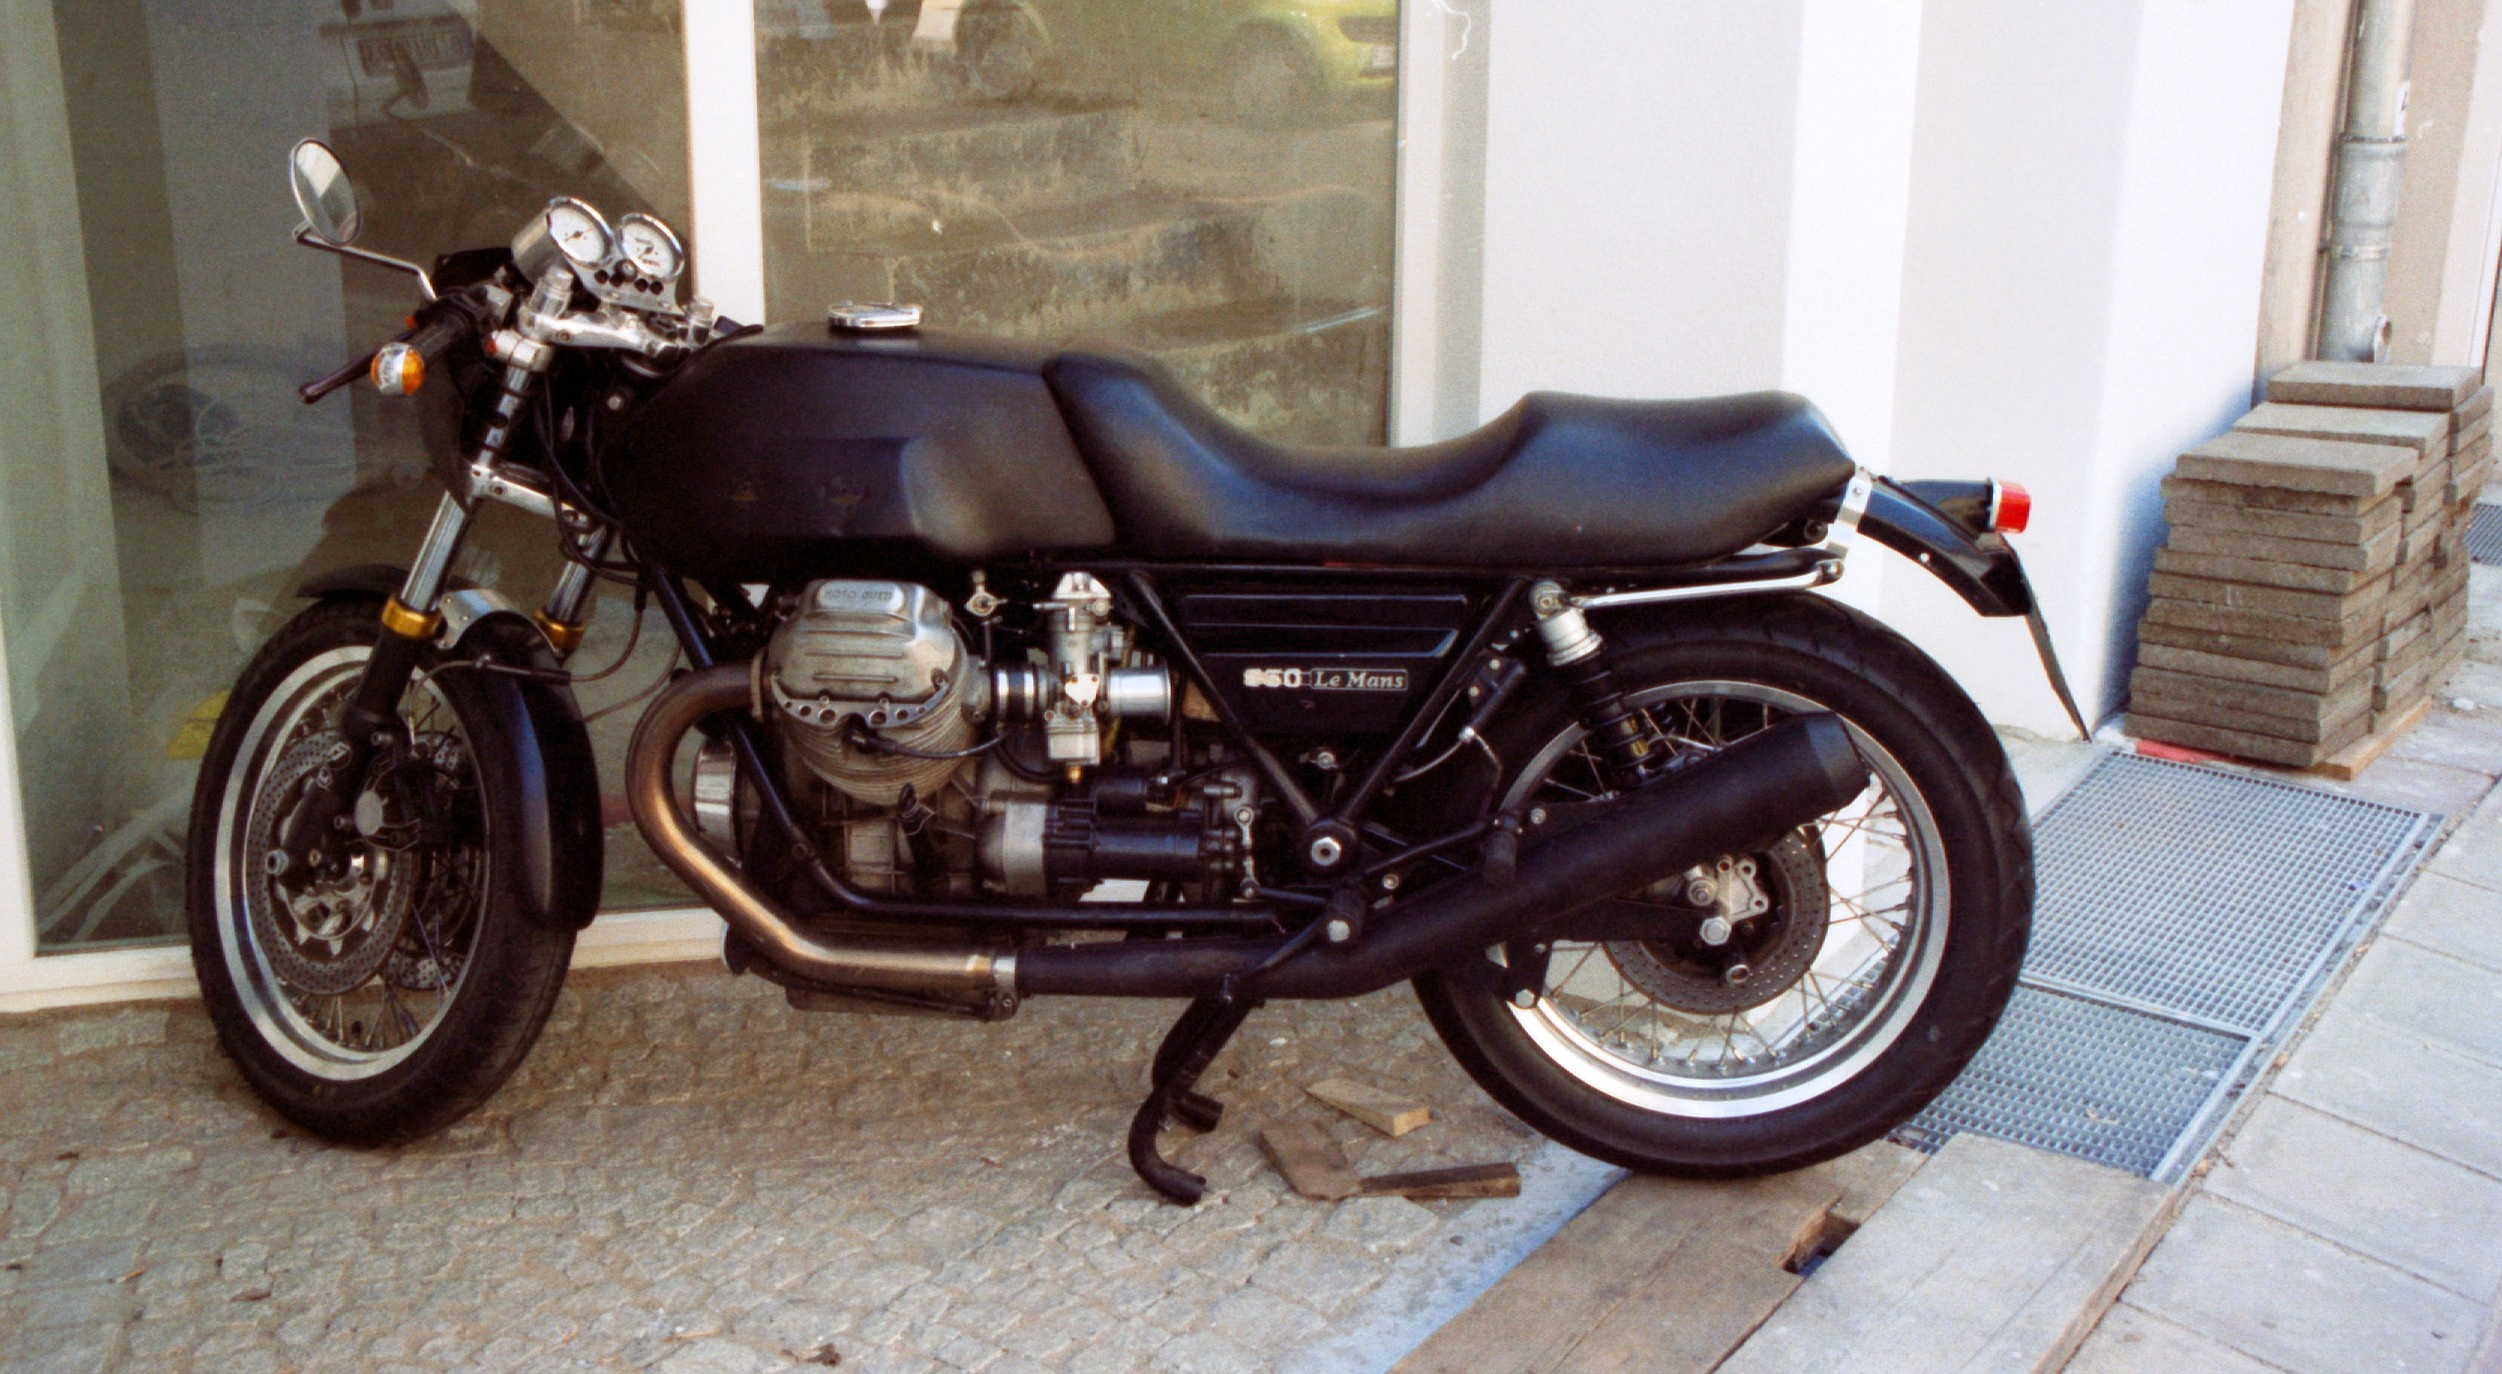 Moto Guzzi California III C 1991 images #107915